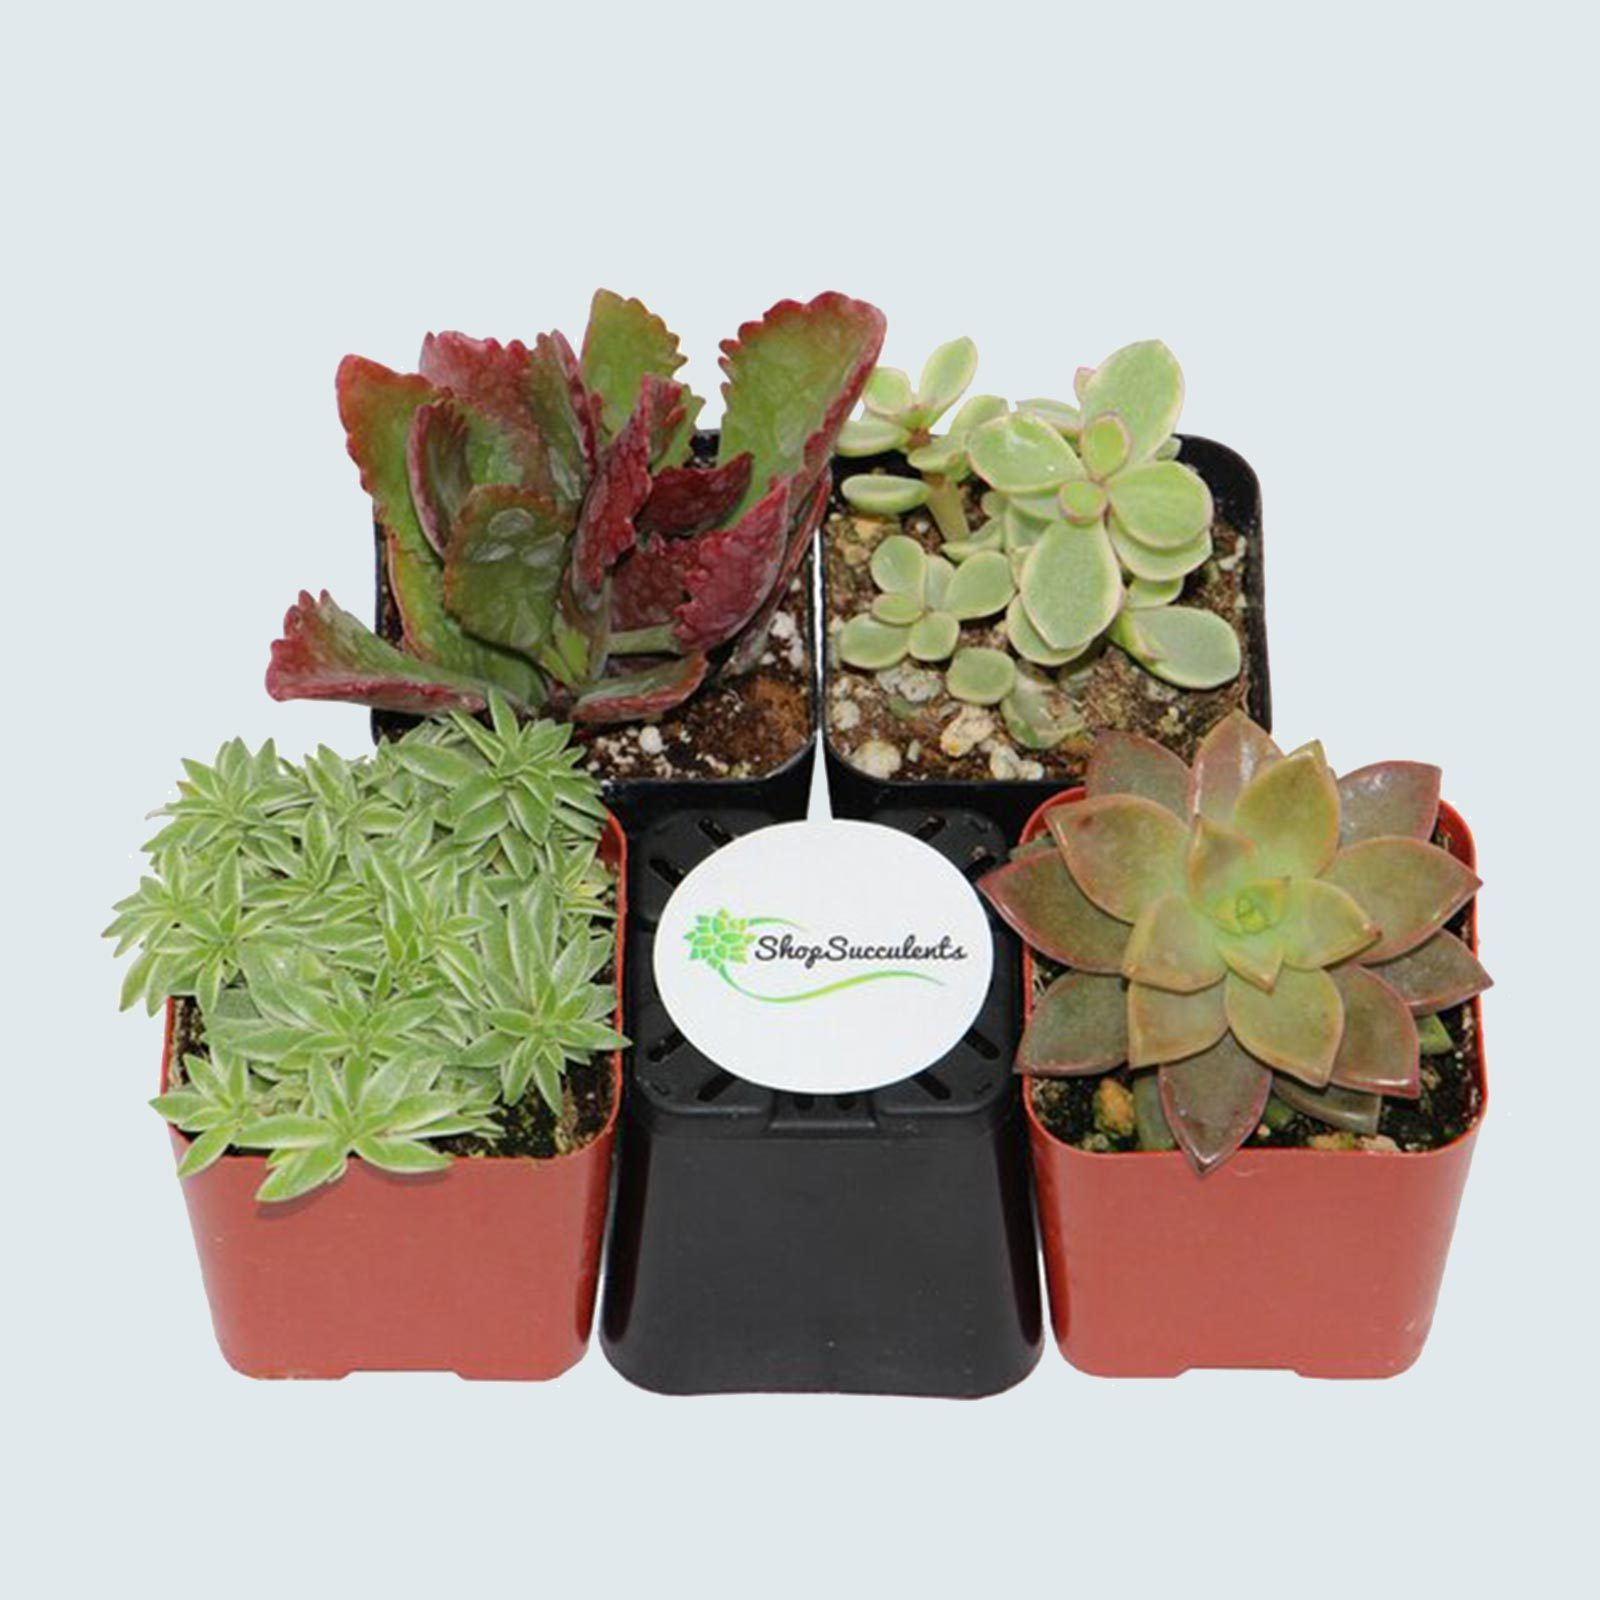 microplants, or succulents